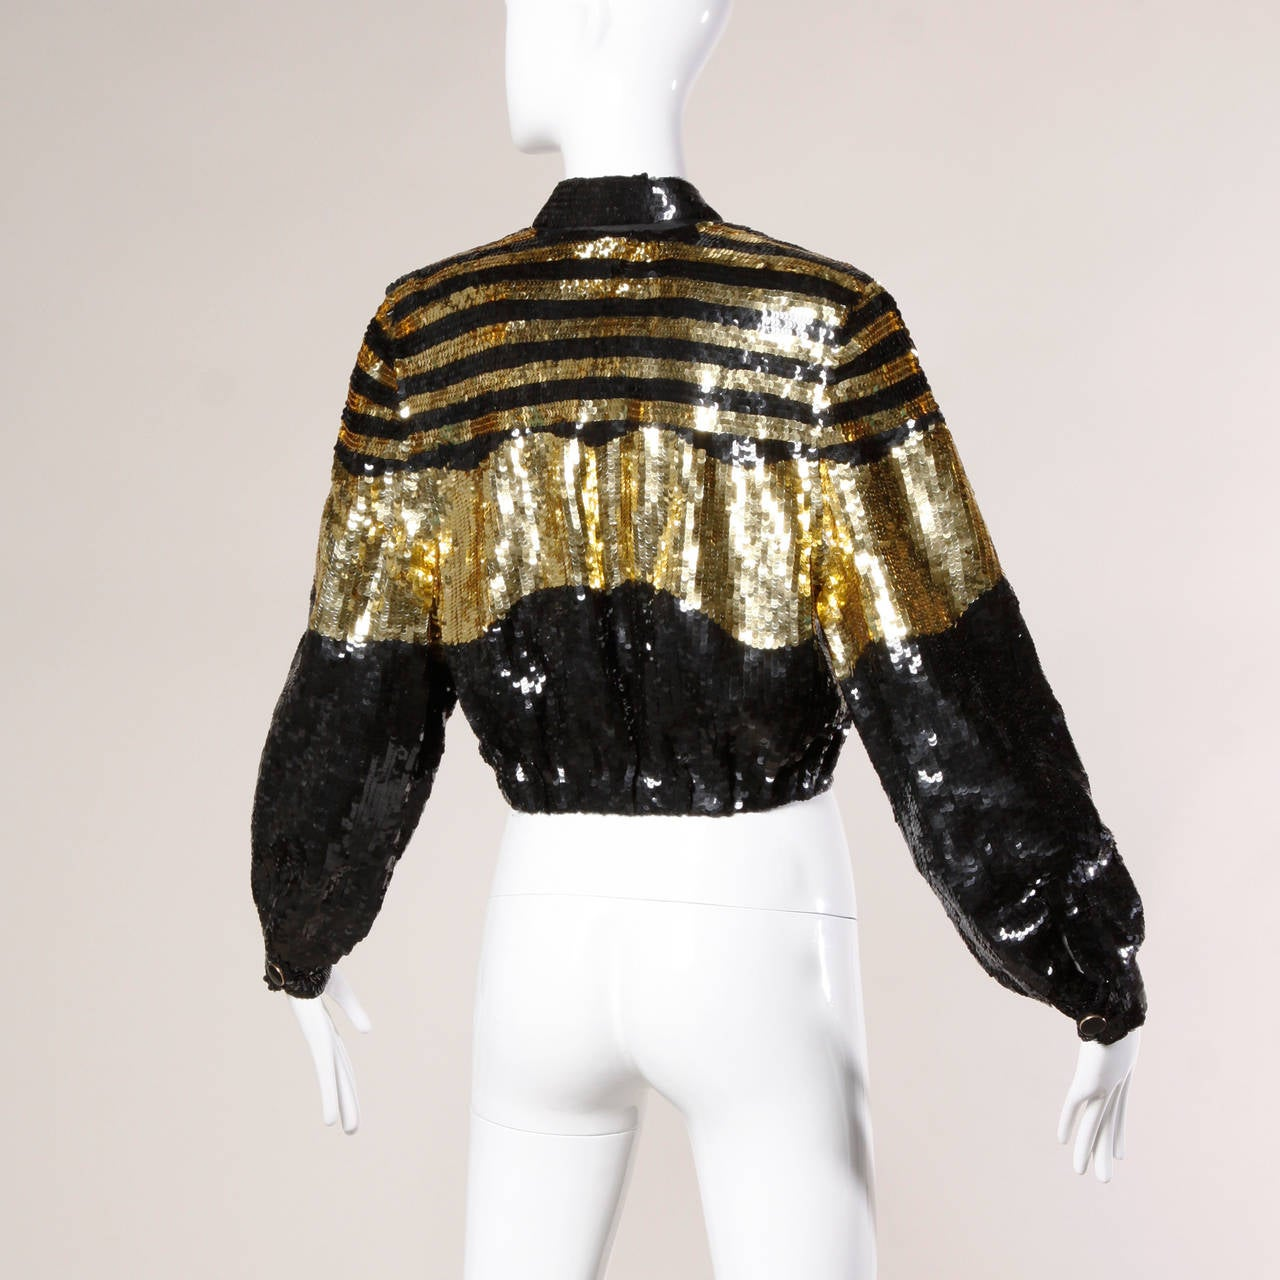 Lillie Rubin Vintage Metallic Gold + Black Sequin Silk Jacket For Sale 1